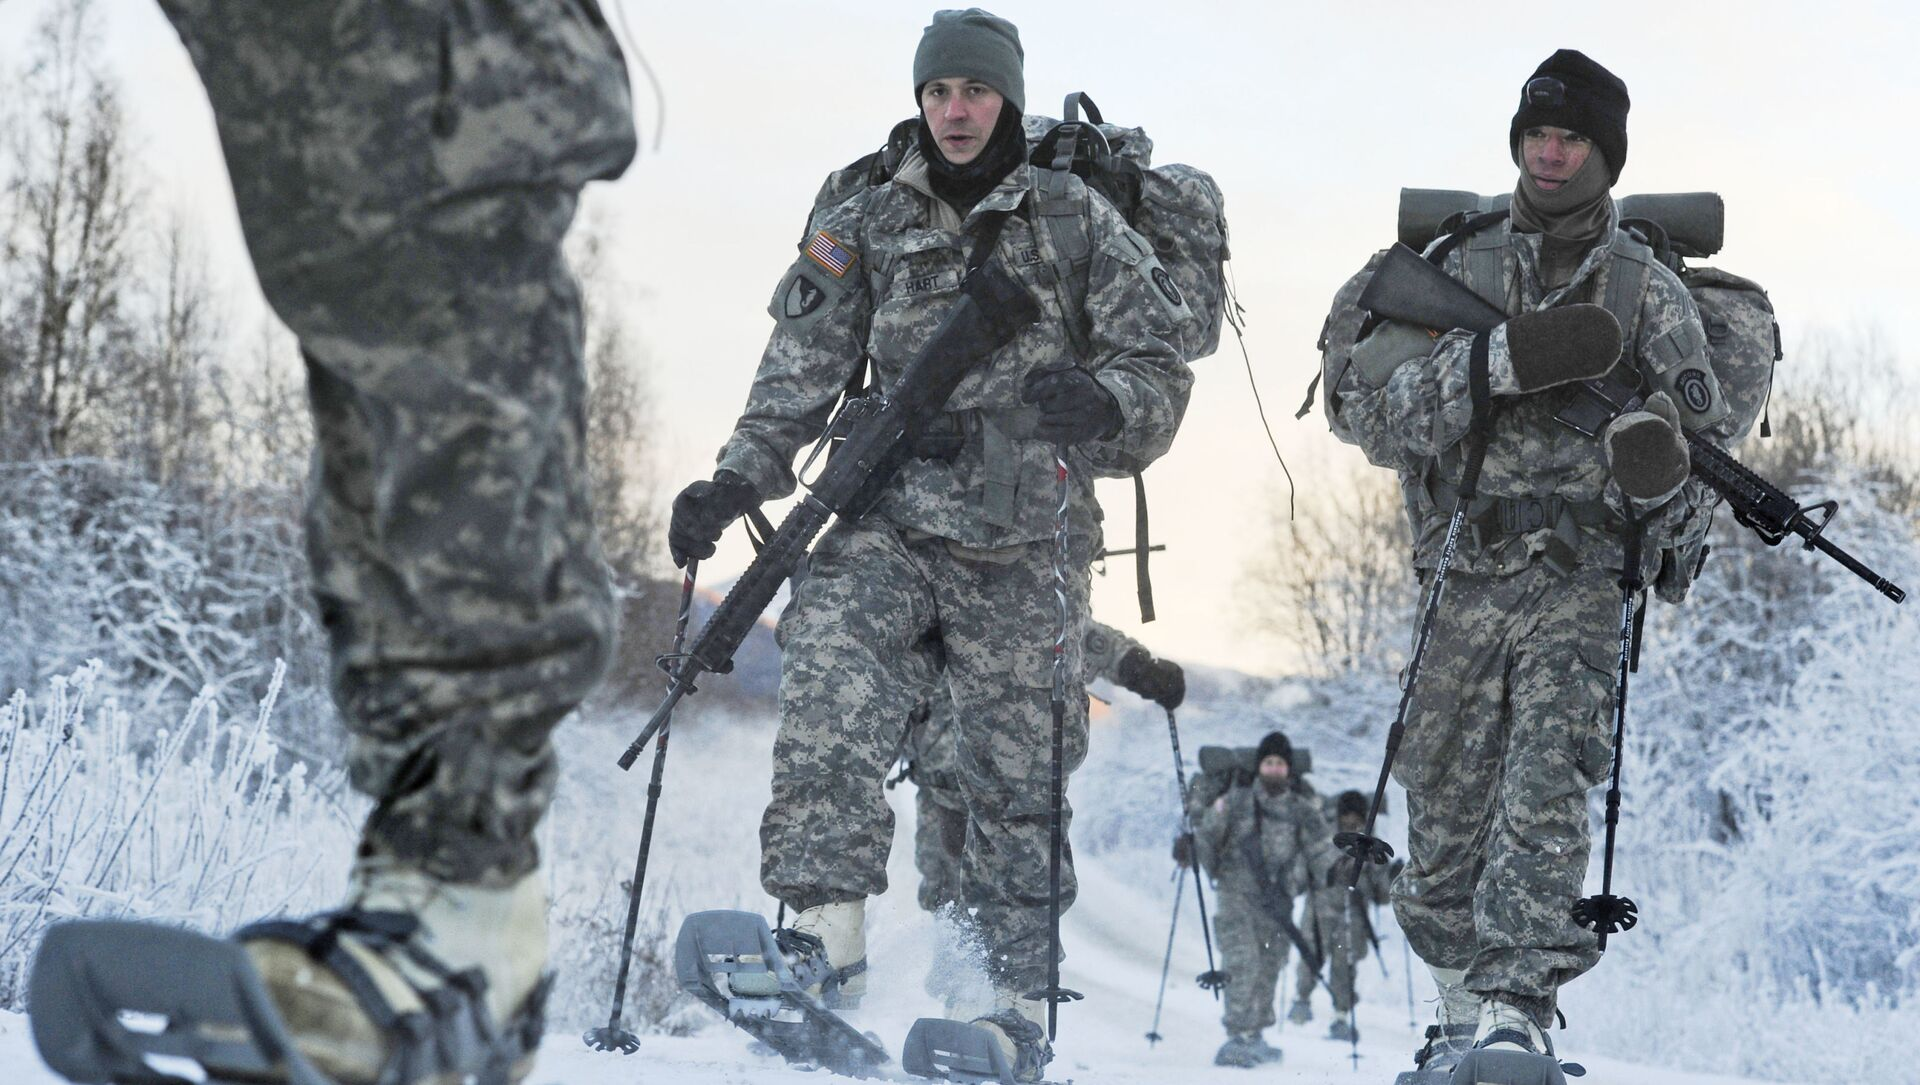 In this 6 December 2012 photo provided by the US Department of Defense, soldiers assigned to 6th Engineer Battalion utilise snow shoes during Arctic Light Individual Training on the Bulldog Trail in sub-zero conditions at Joint Base Elmendorf-Richardson, Alaska.  ALIT is the United States Army Alaska's Cold Weather Indoctrination program. It gives all soldiers, regardless of their job, the foundation to successfully work, train, and go to war in some of the harshest environments in the world.  - Sputnik International, 1920, 27.07.2021